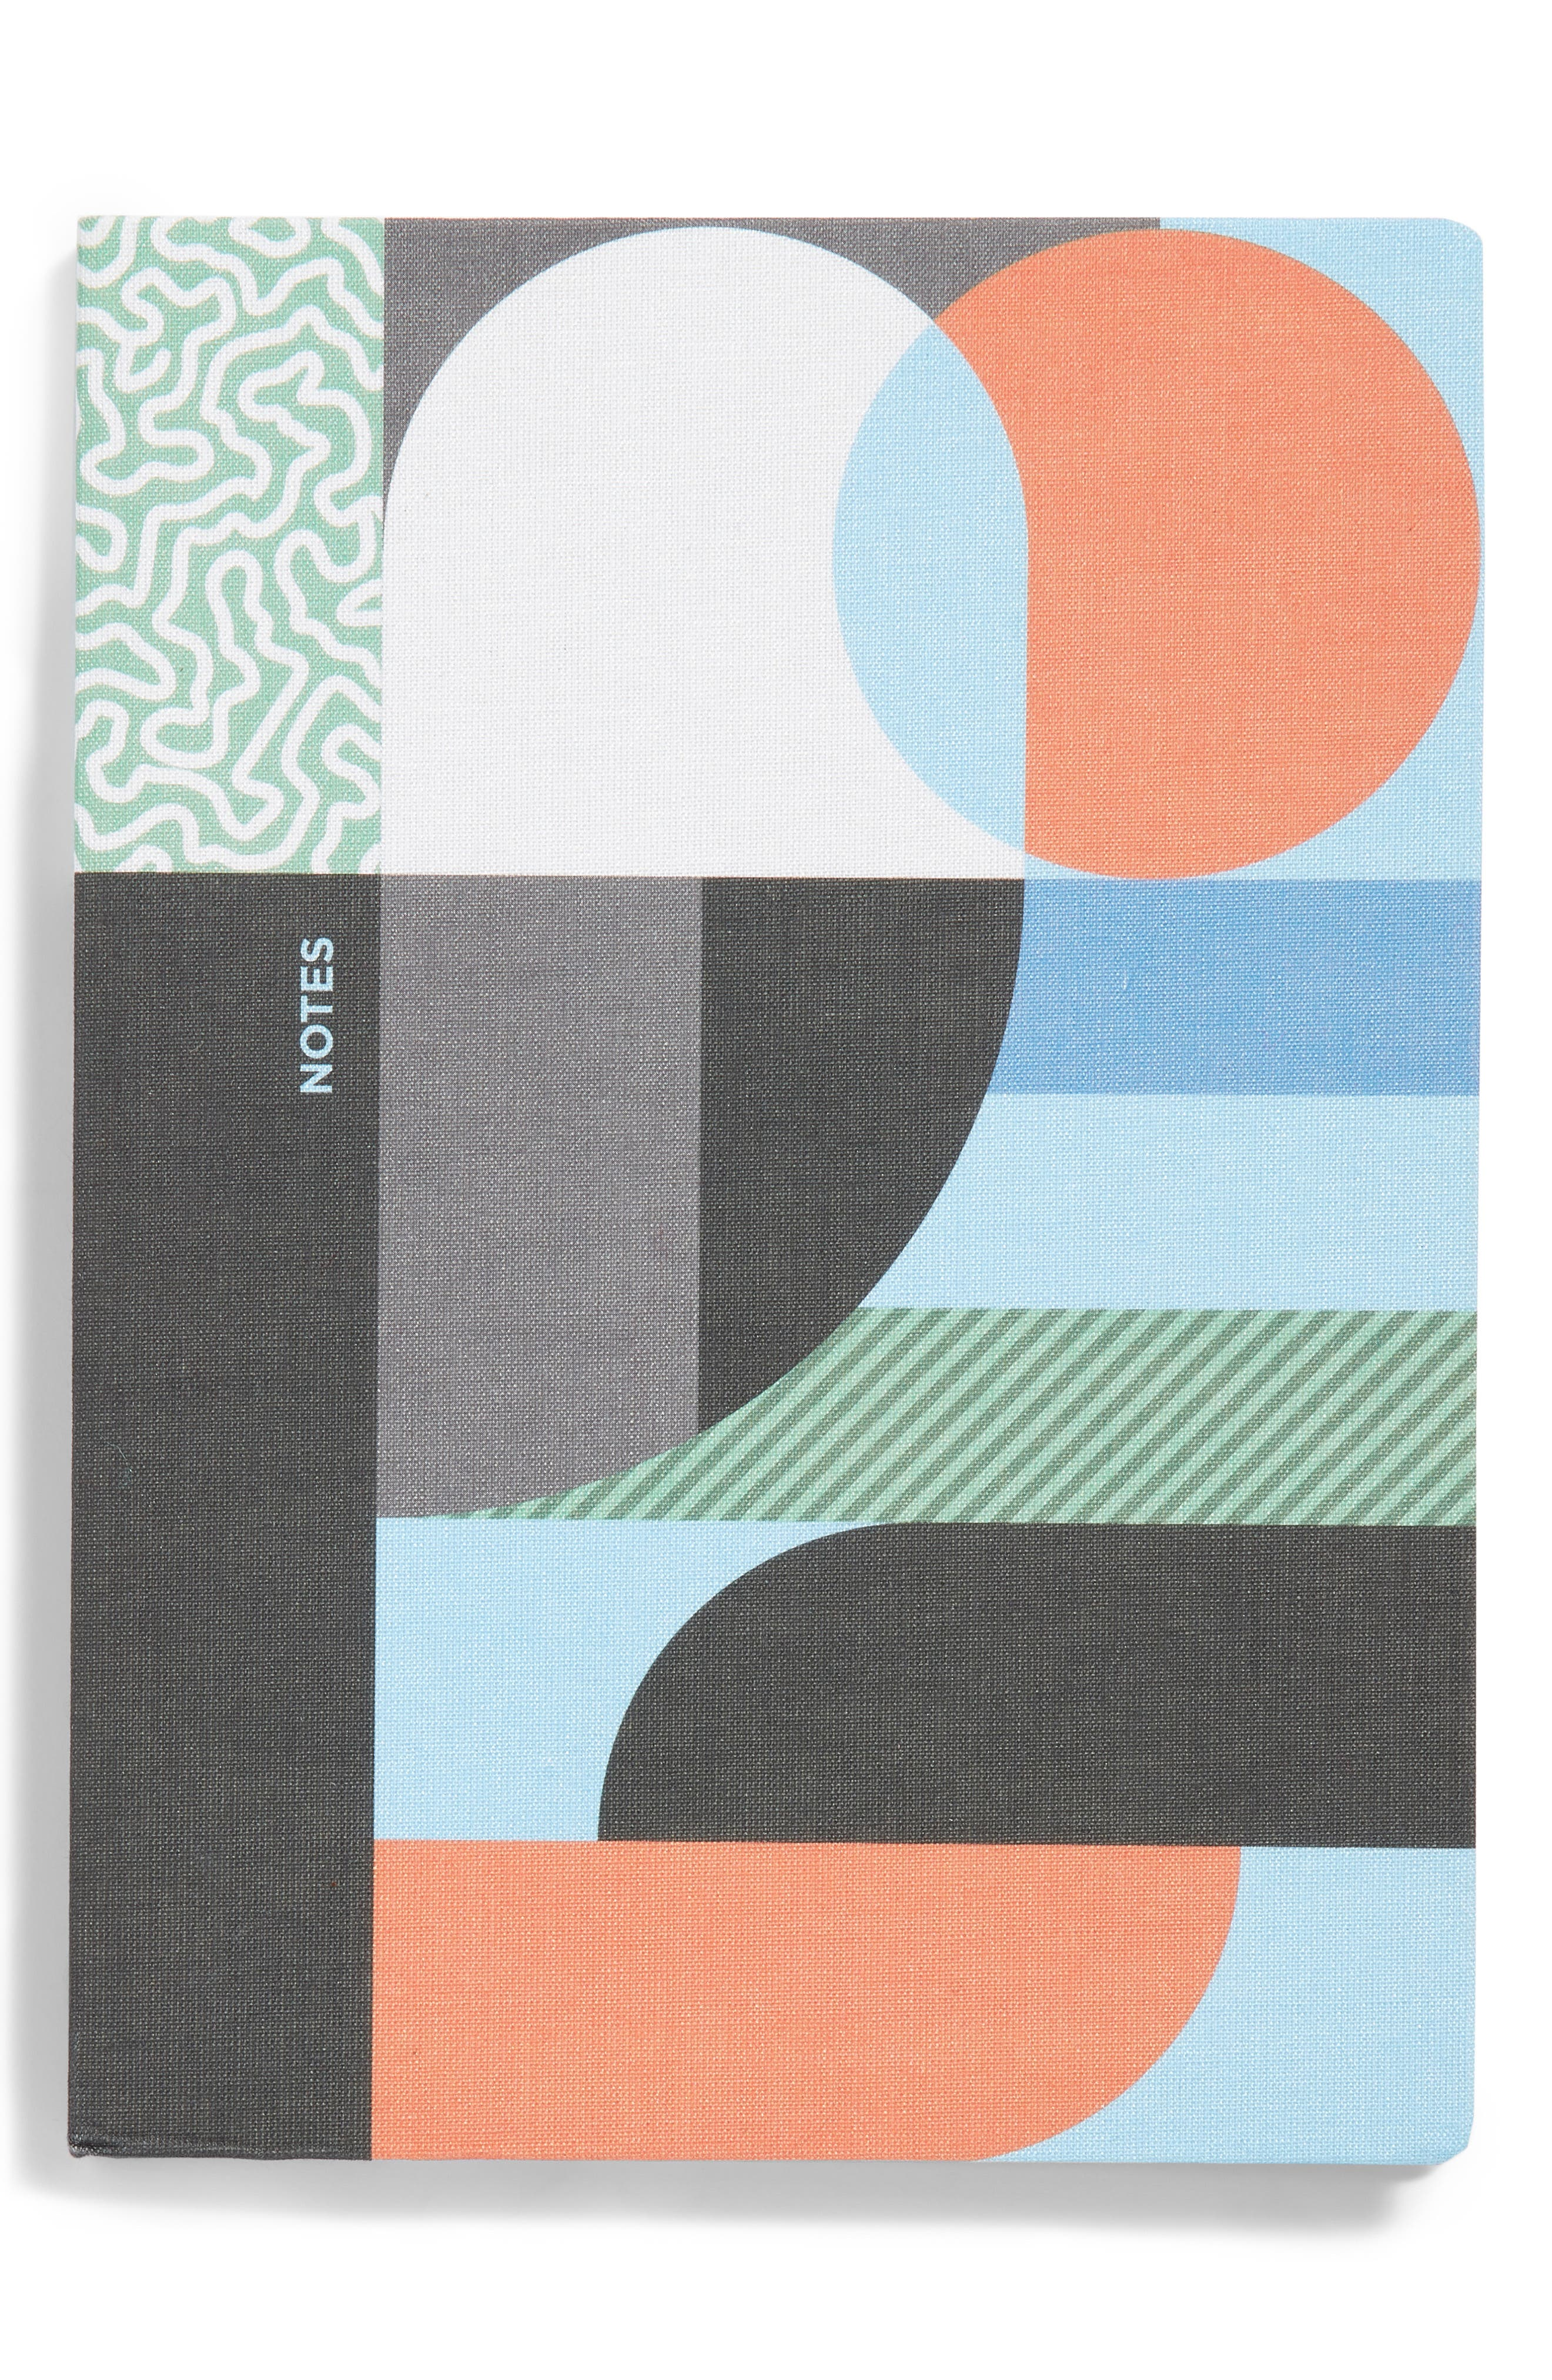 Faubourg Notebook,                         Main,                         color, 960